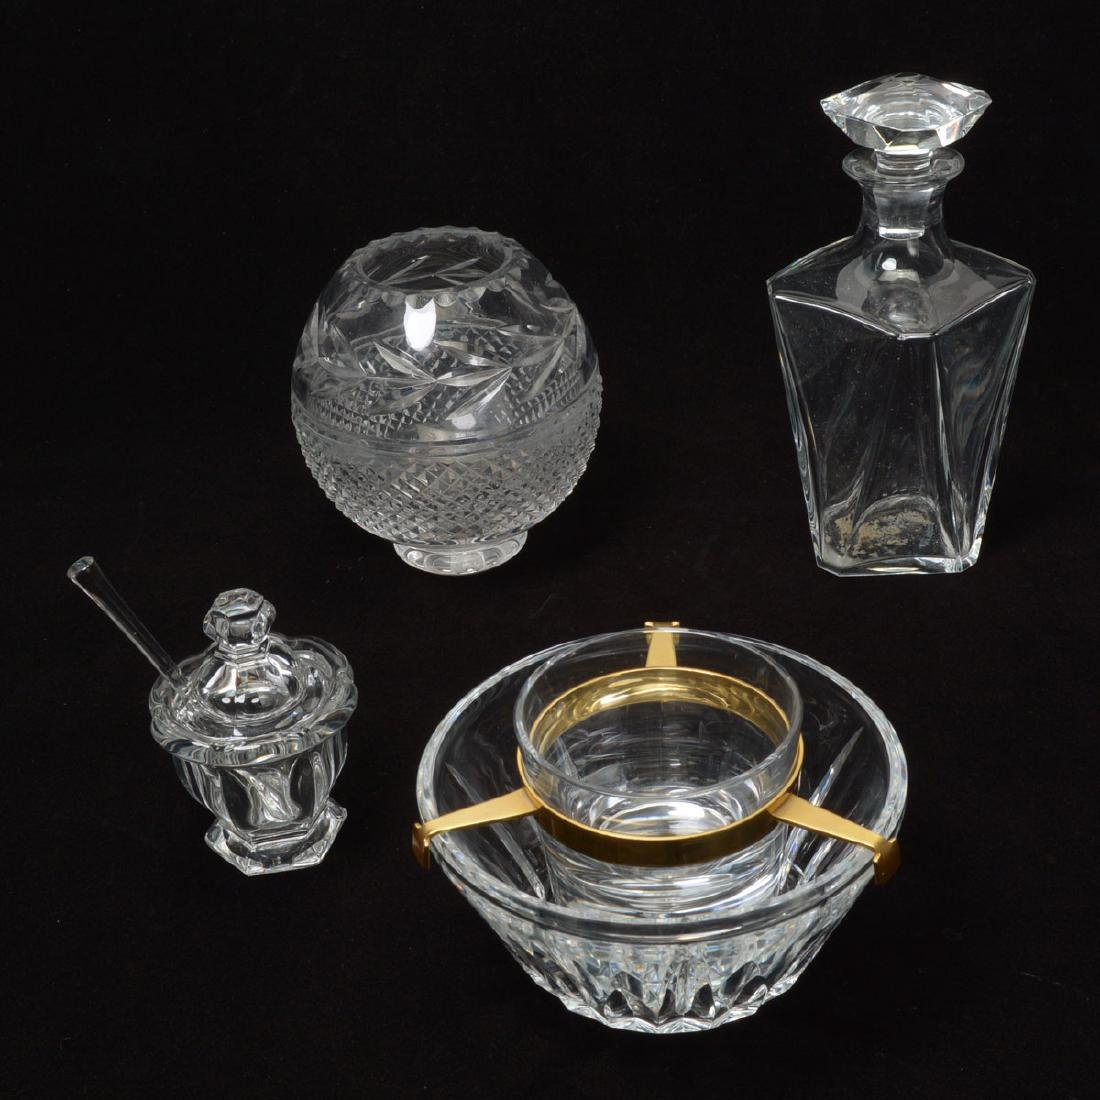 Baccarat Decanter, Caviare Server and Covered Jar with